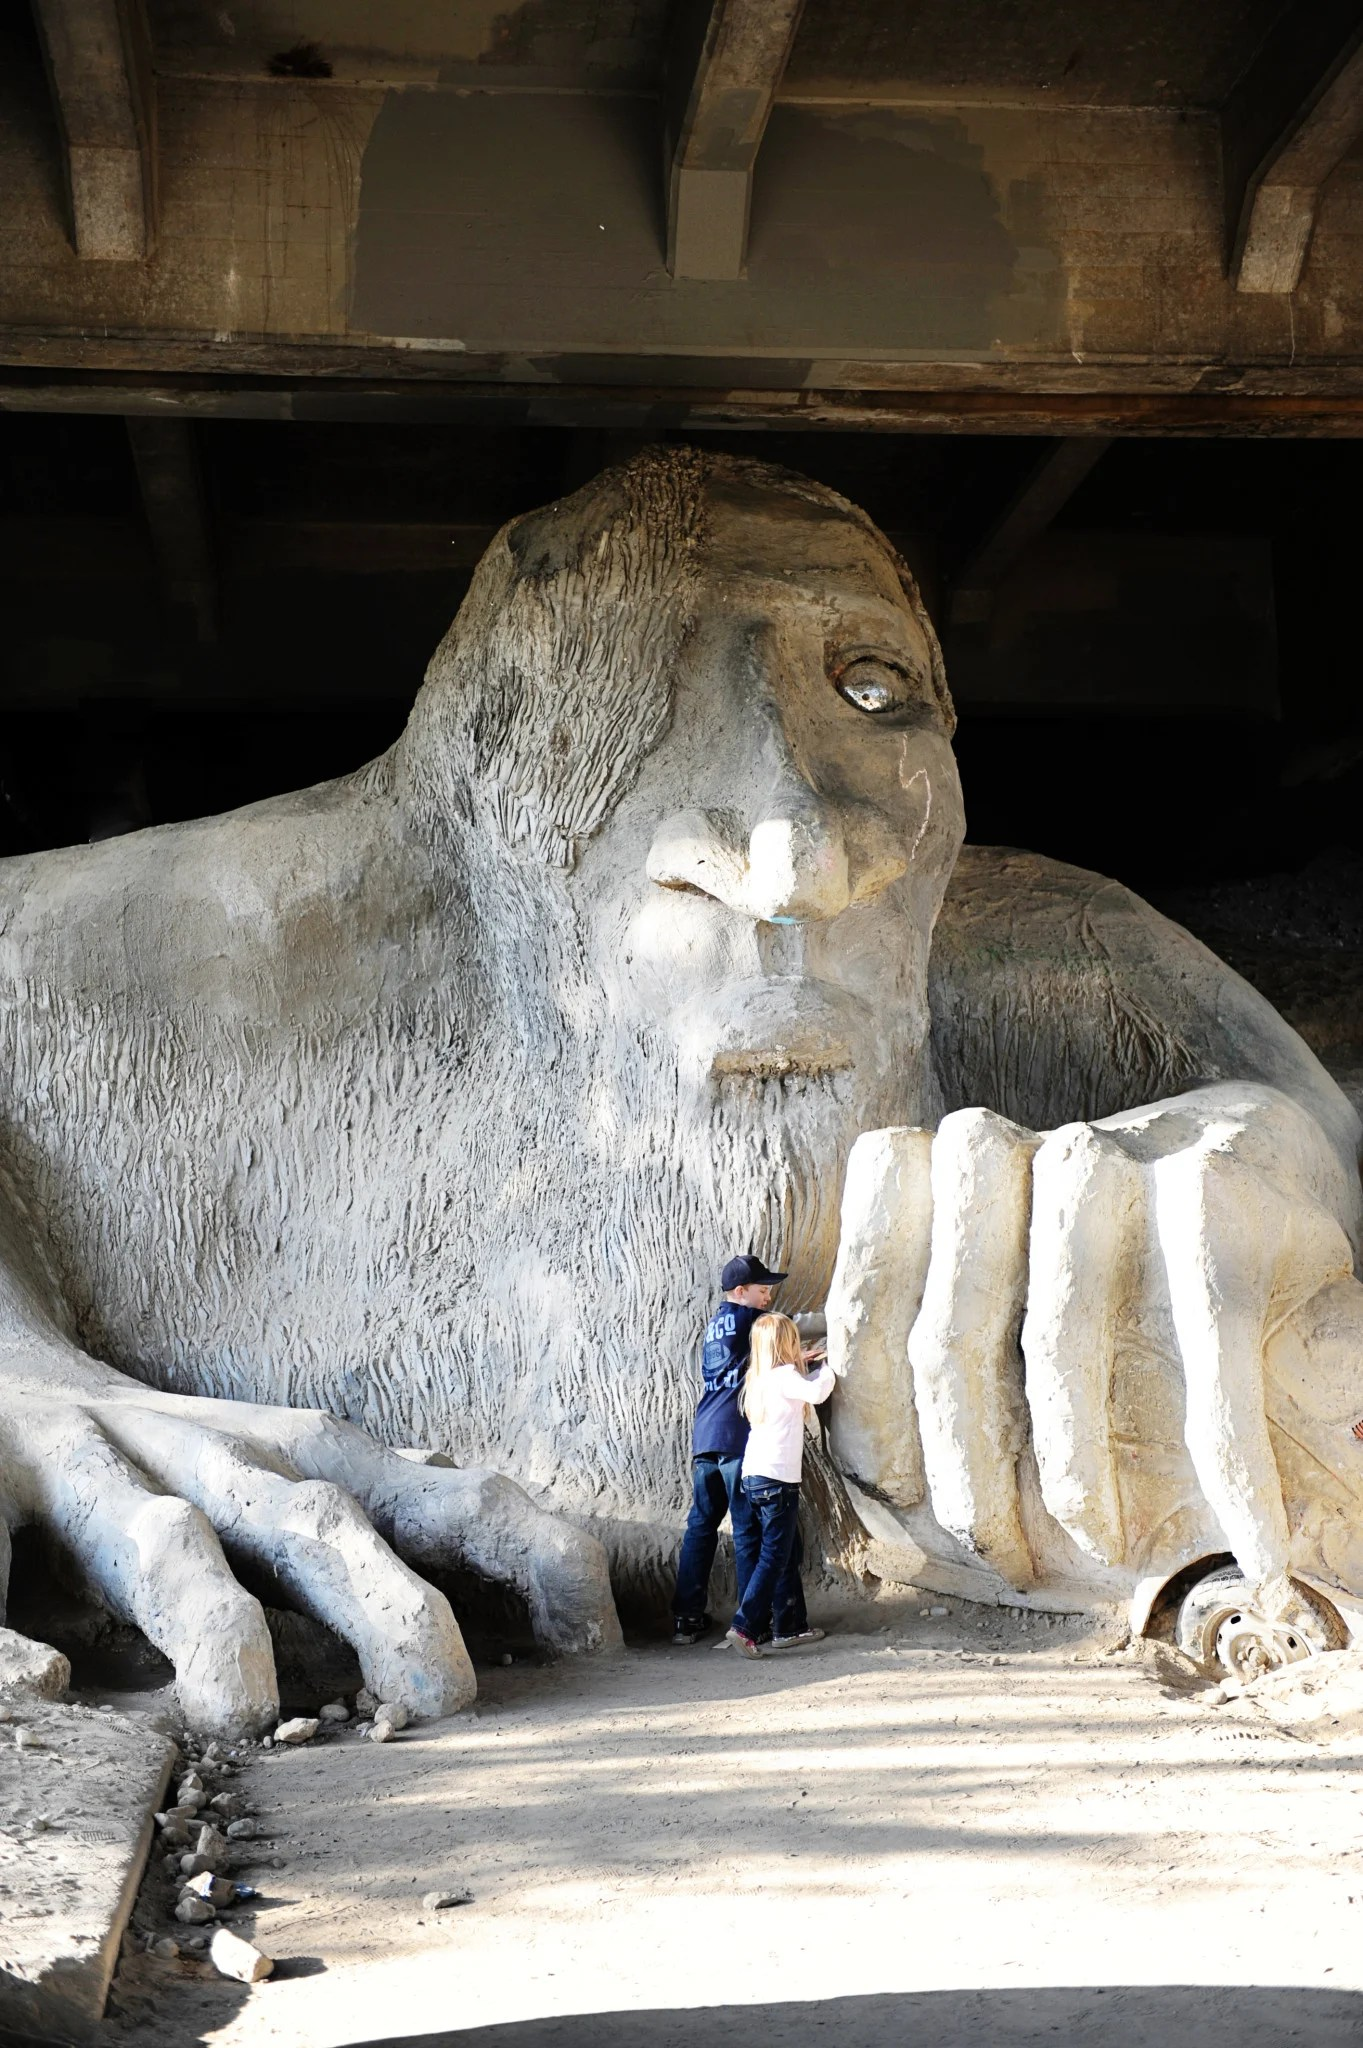 The Seattle Fremont Troll : Things to do in Seattle